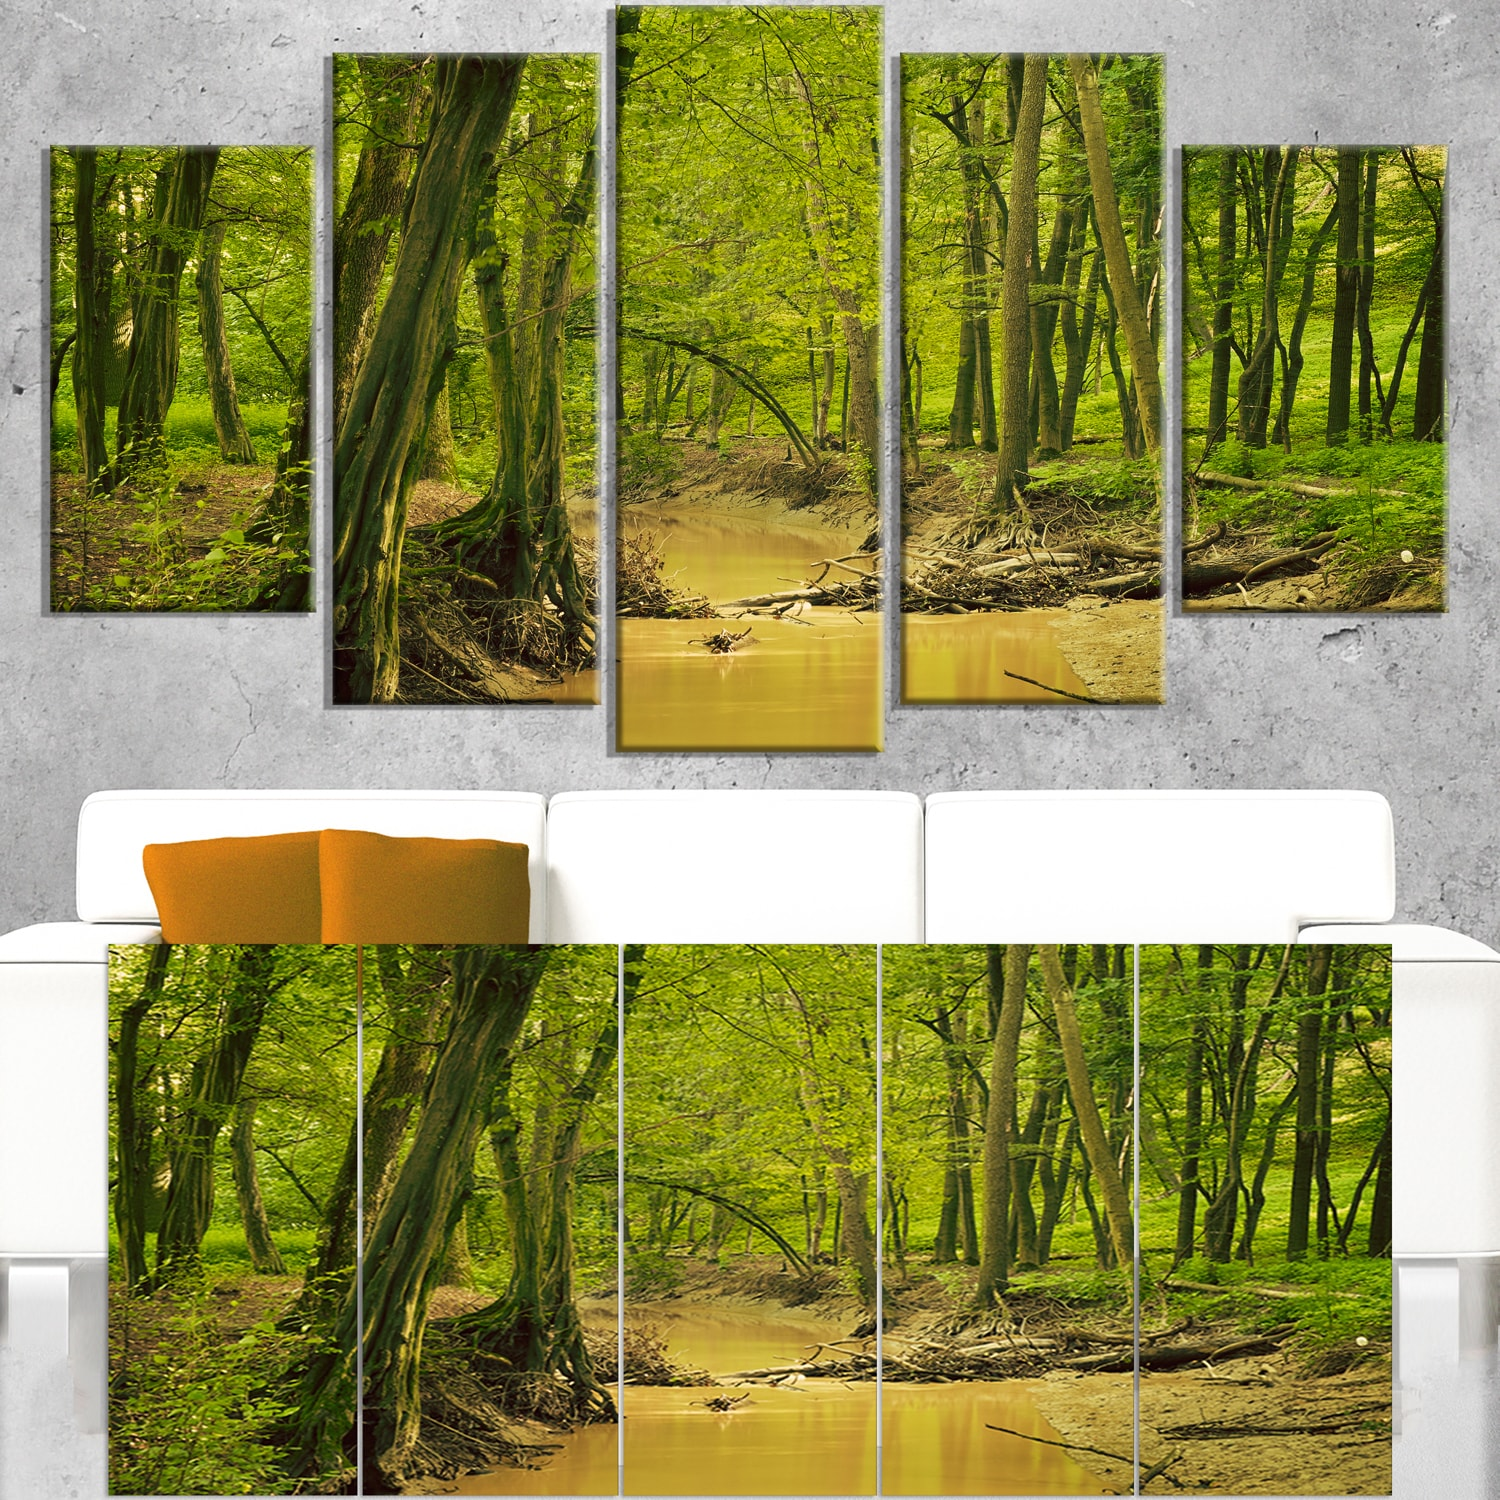 DESIGN ART Creek in Wild Green Forest - Oversized Forest Canvas Artwork 60 in. wide x 32 in. high - 5 Panels Diamond Shape